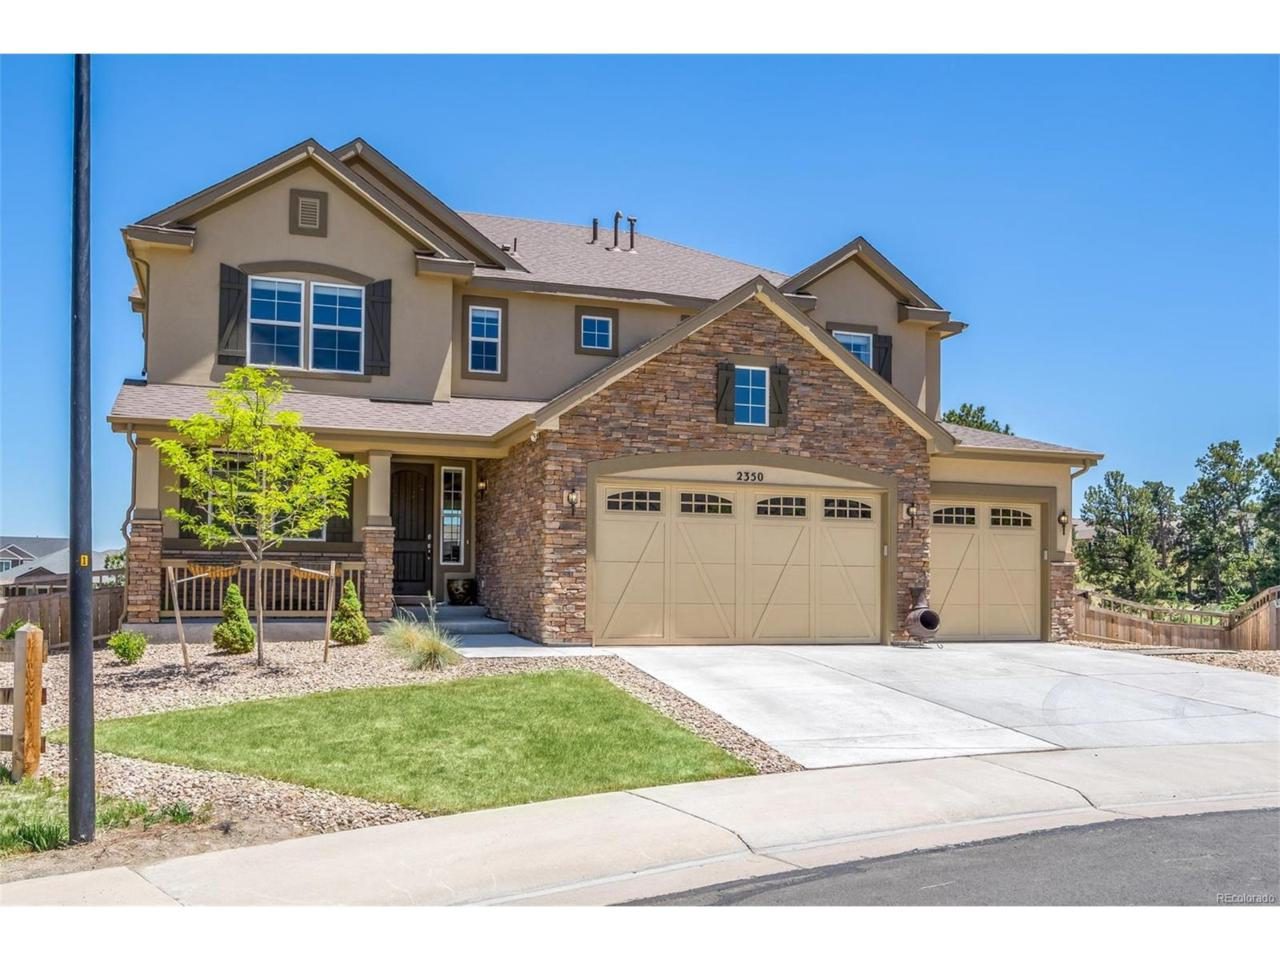 2350 Robin Song Court, Castle Rock, CO 80109 (MLS #5645304) :: 8z Real Estate